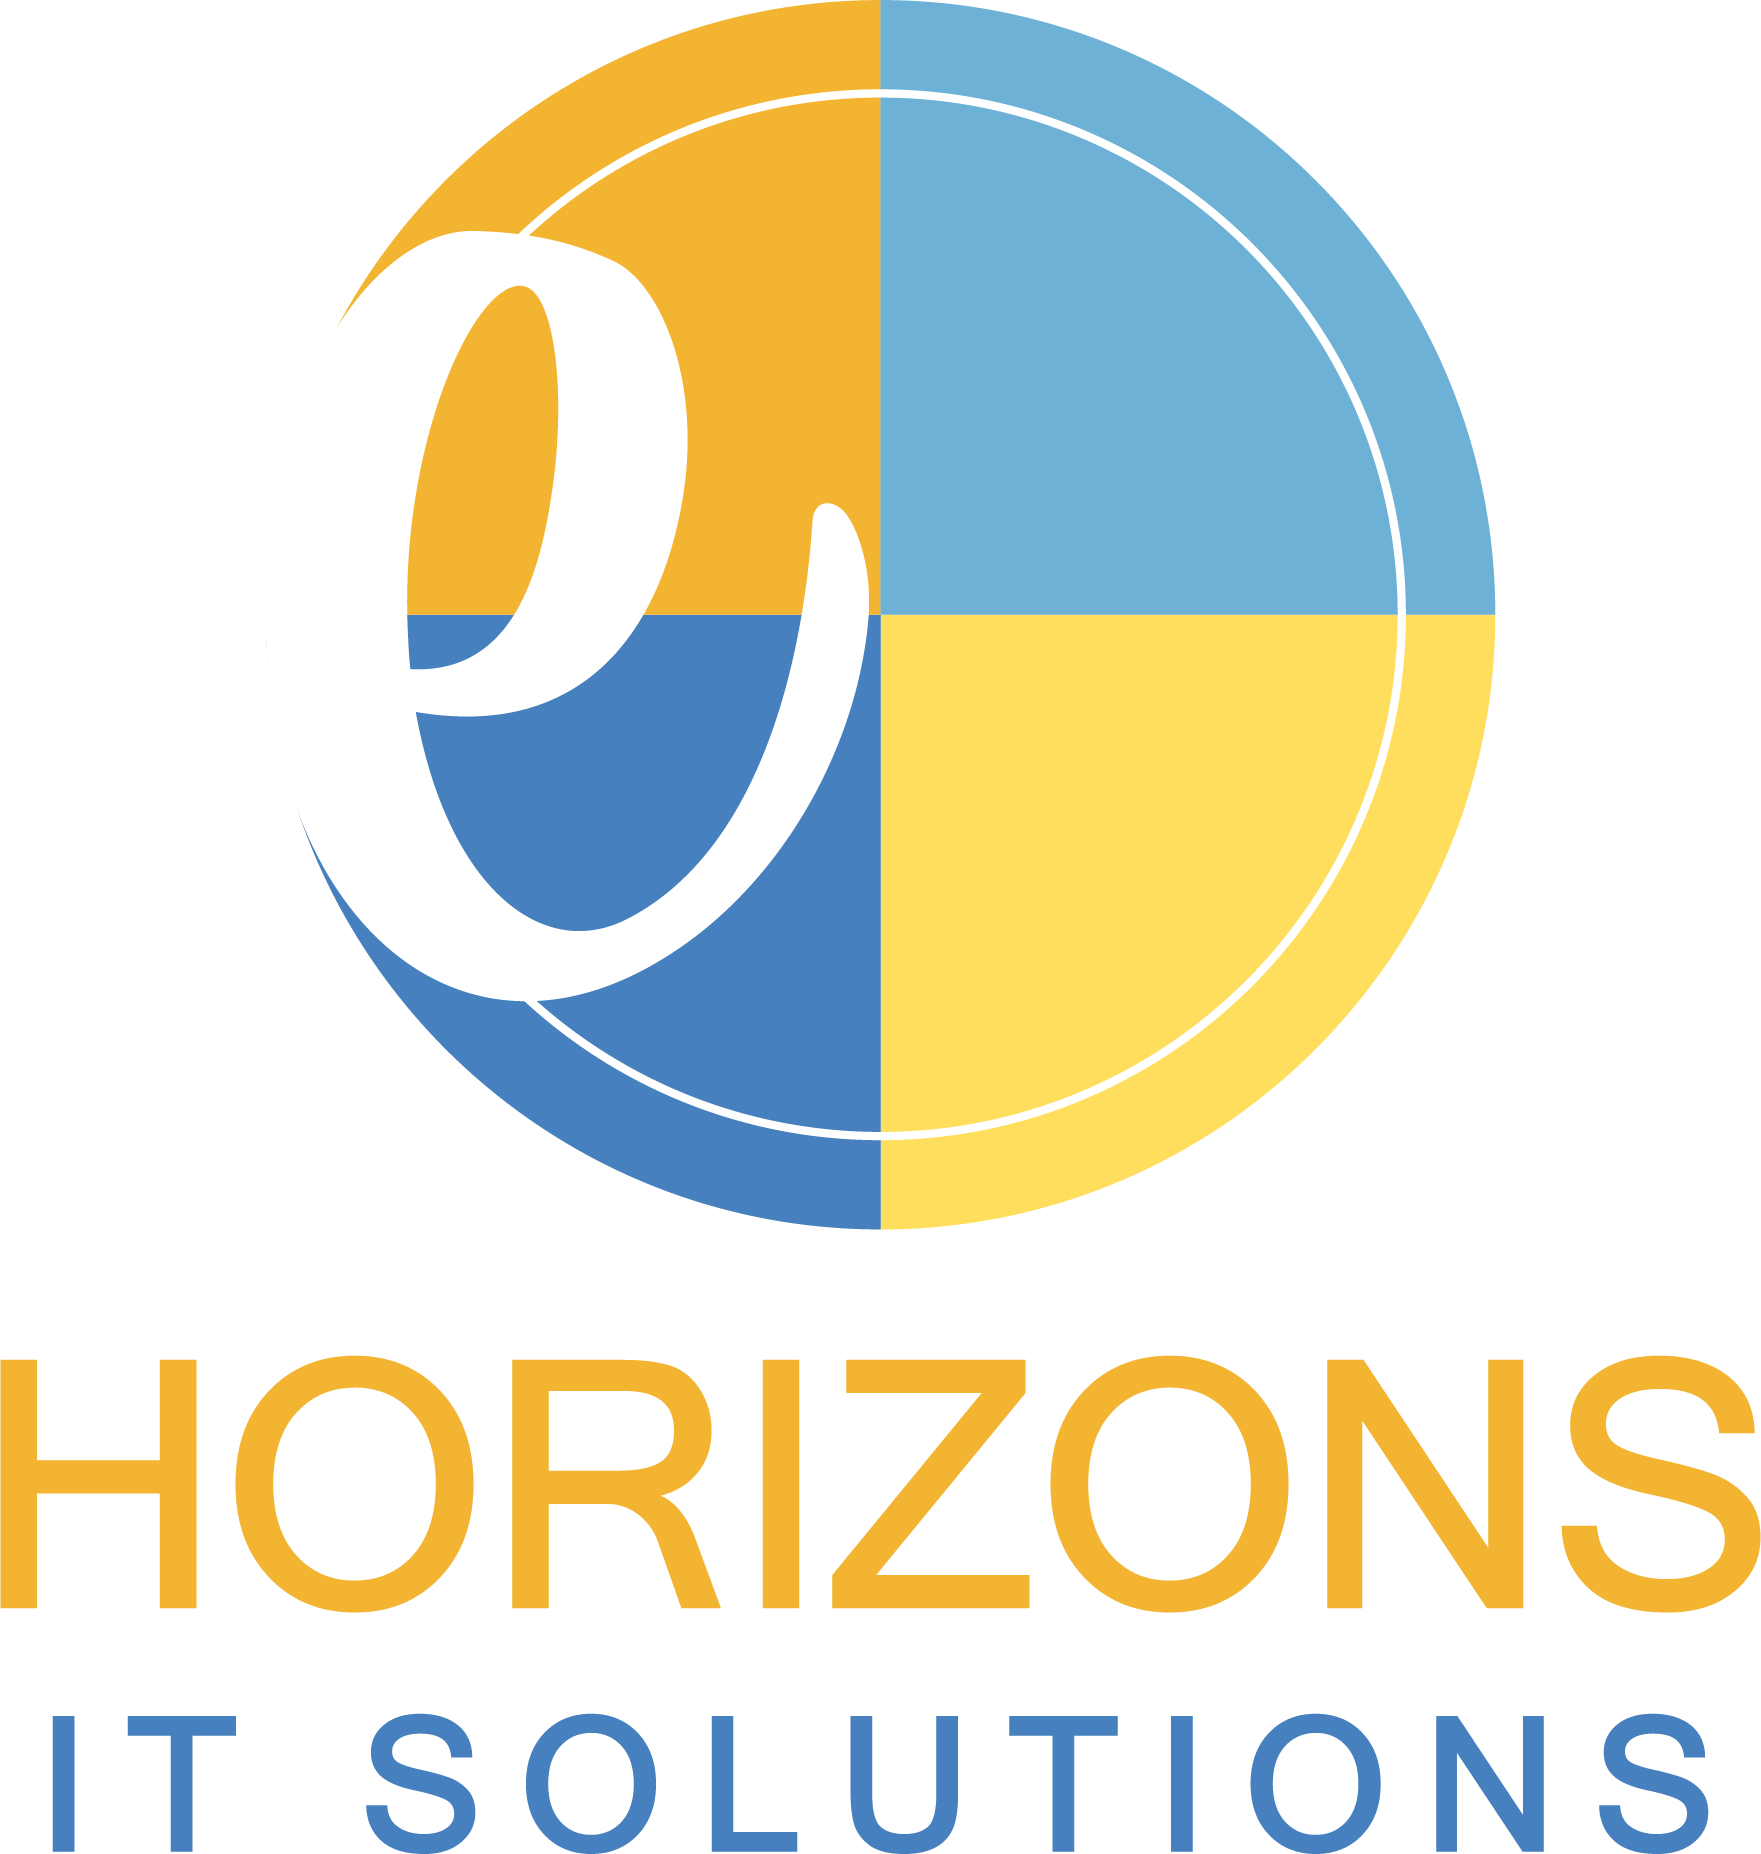 eHorizons IT Solutions